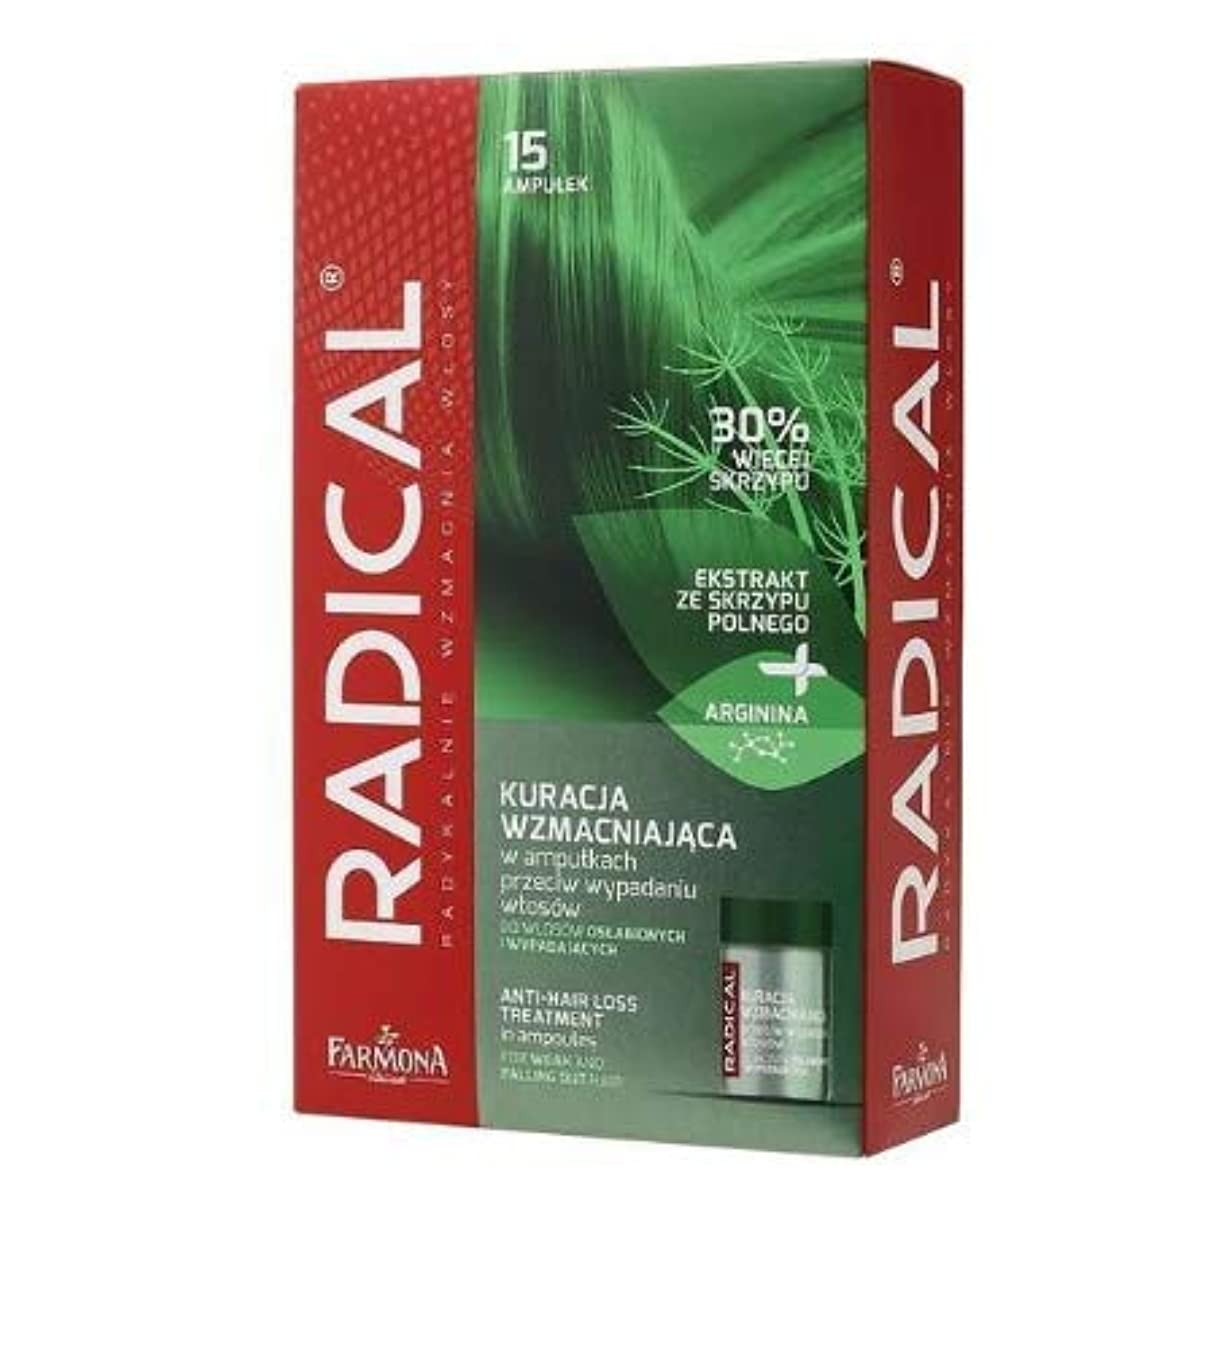 Farmona Radical Strenghtening Anti Hair Loss Treatment in Ampoules for Weak and Falling Out Hair 15 x 5 ml r6952484991